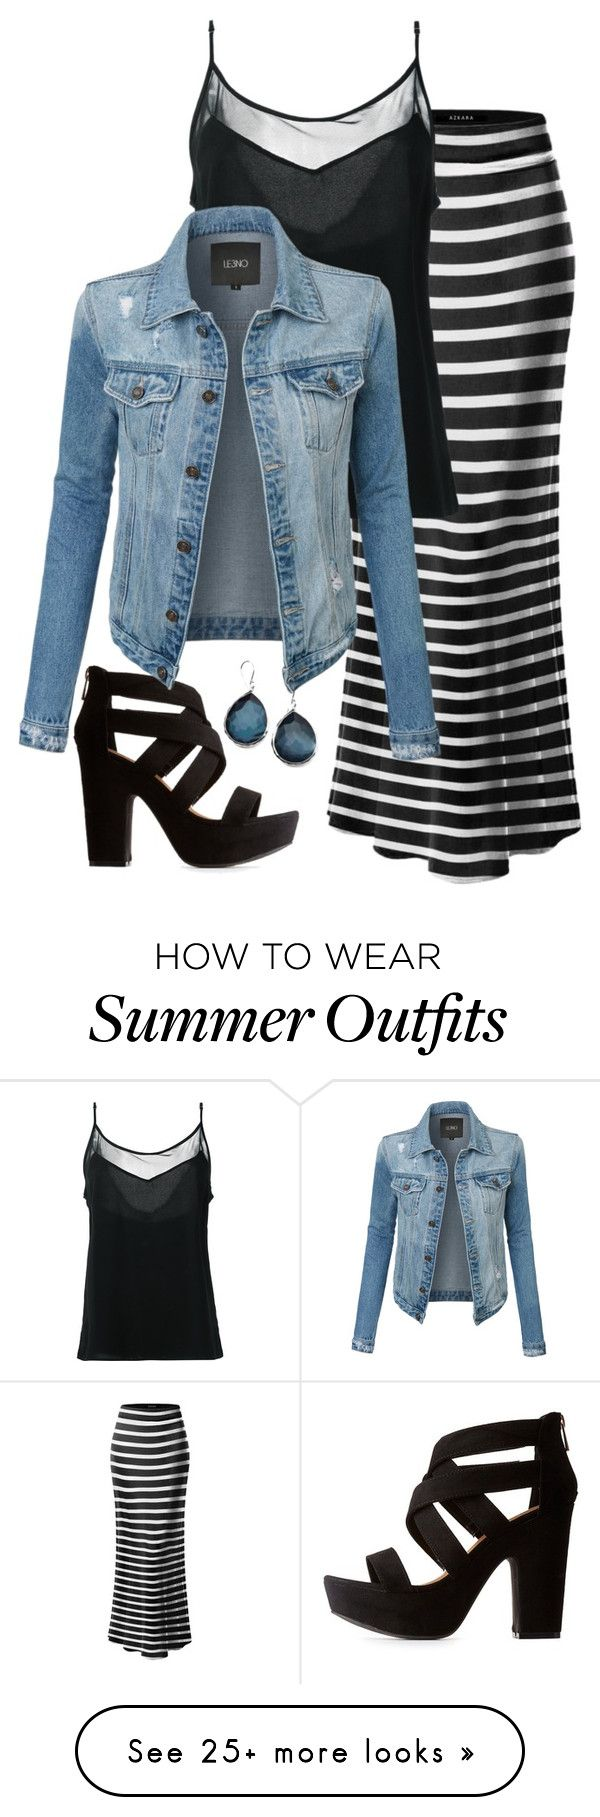 """Thursday"" by debatron on Polyvore featuring Bamboo, Olympiah, LE3NO a..."